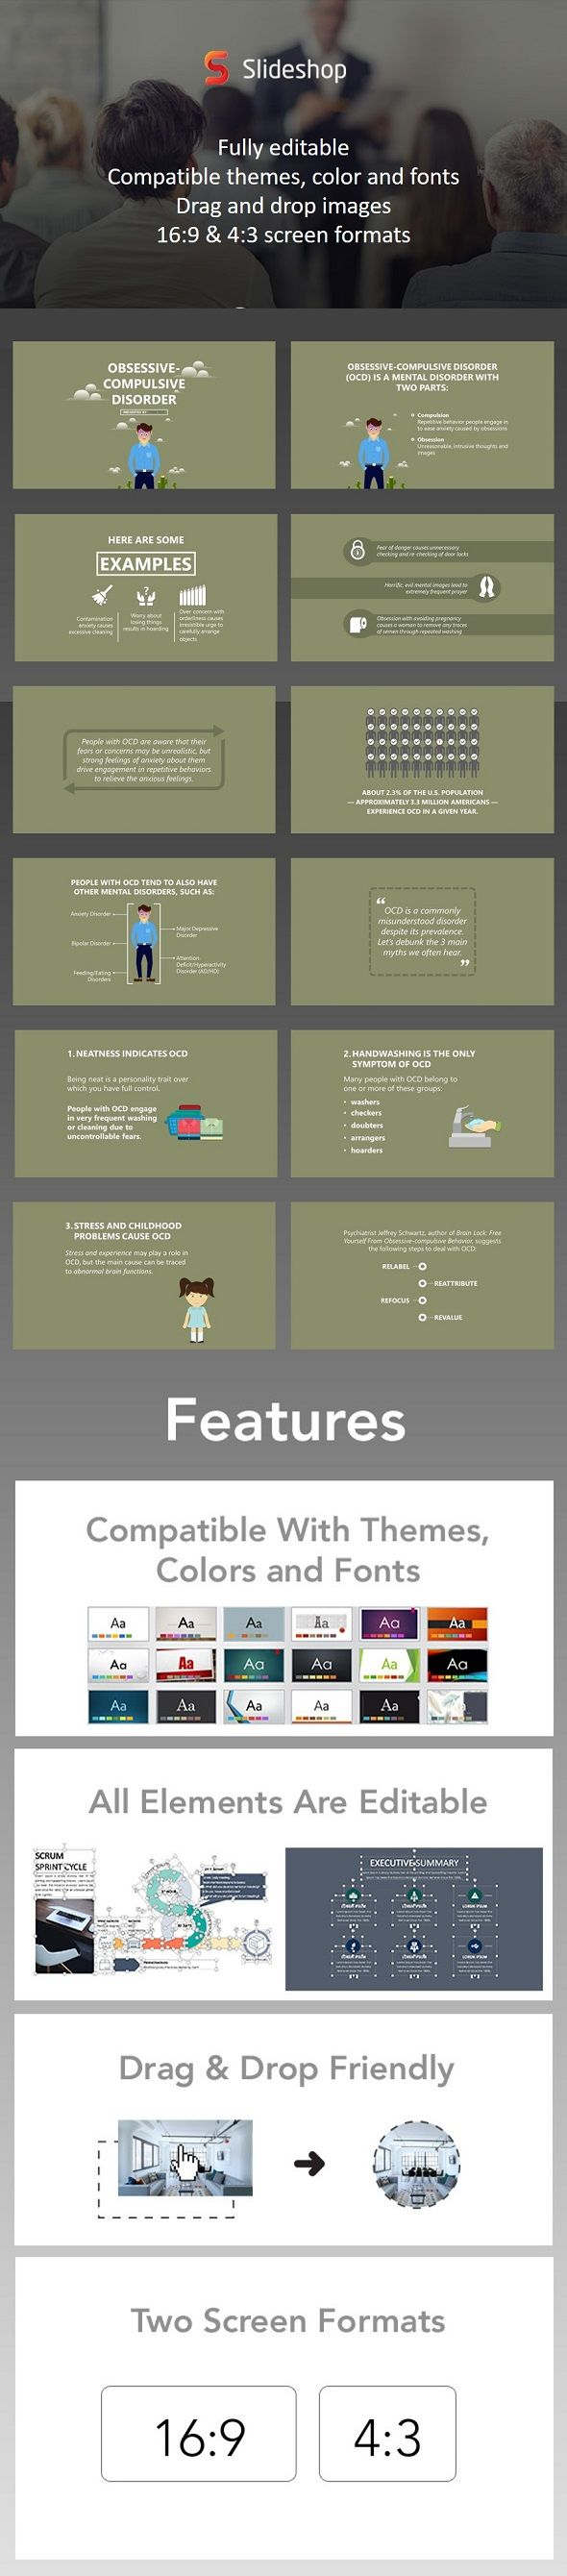 OCD - #PowerPoint Templates #Presentation #Templates Download here: https://graphicriver.net/item/ocd/20164139?ref=alena994